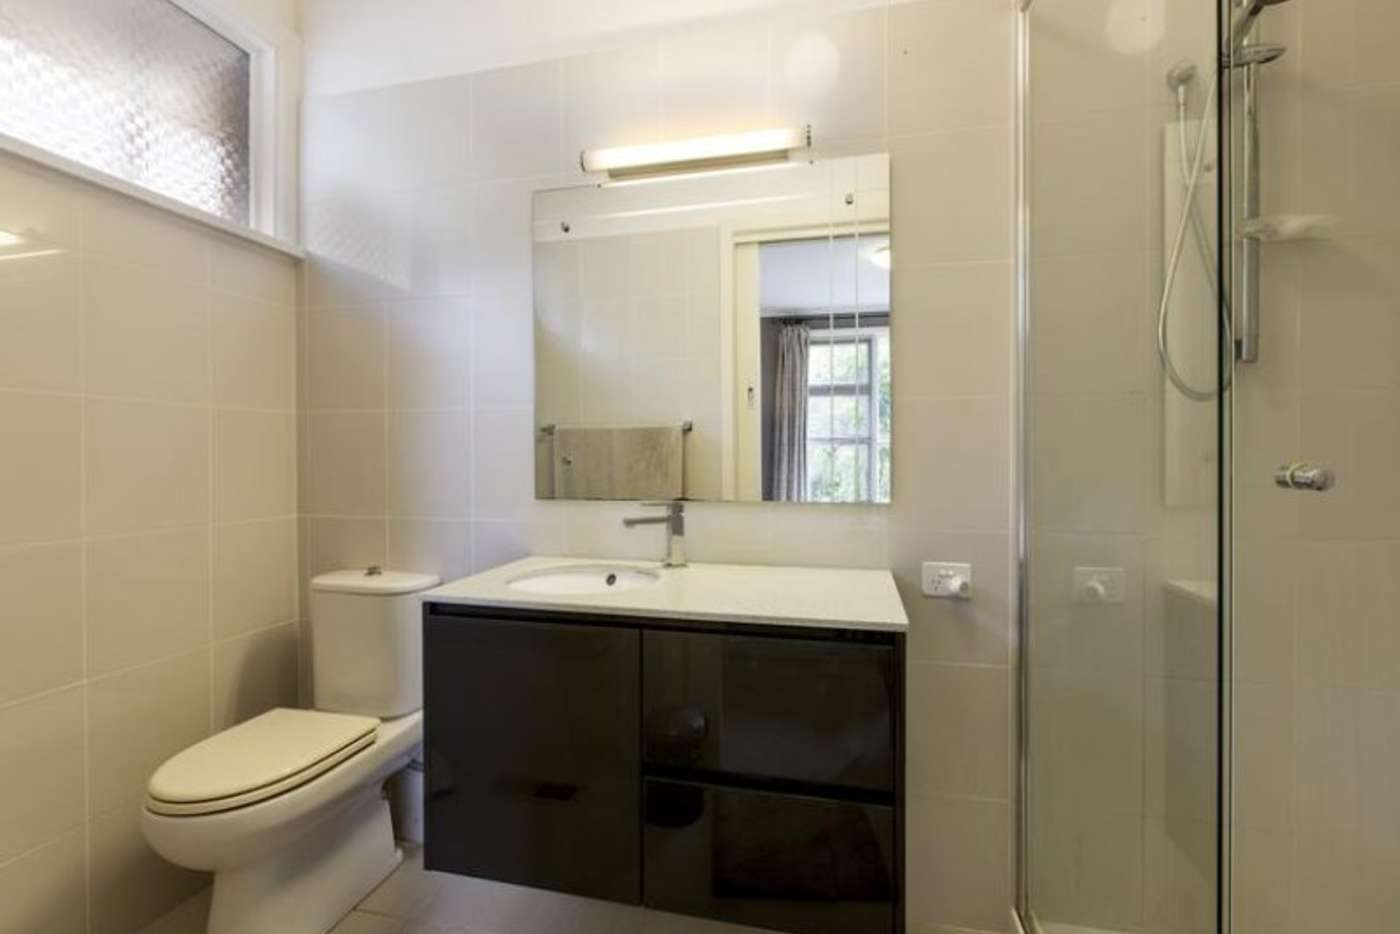 Sixth view of Homely house listing, 34 Minerva Avenue, Balwyn North VIC 3104